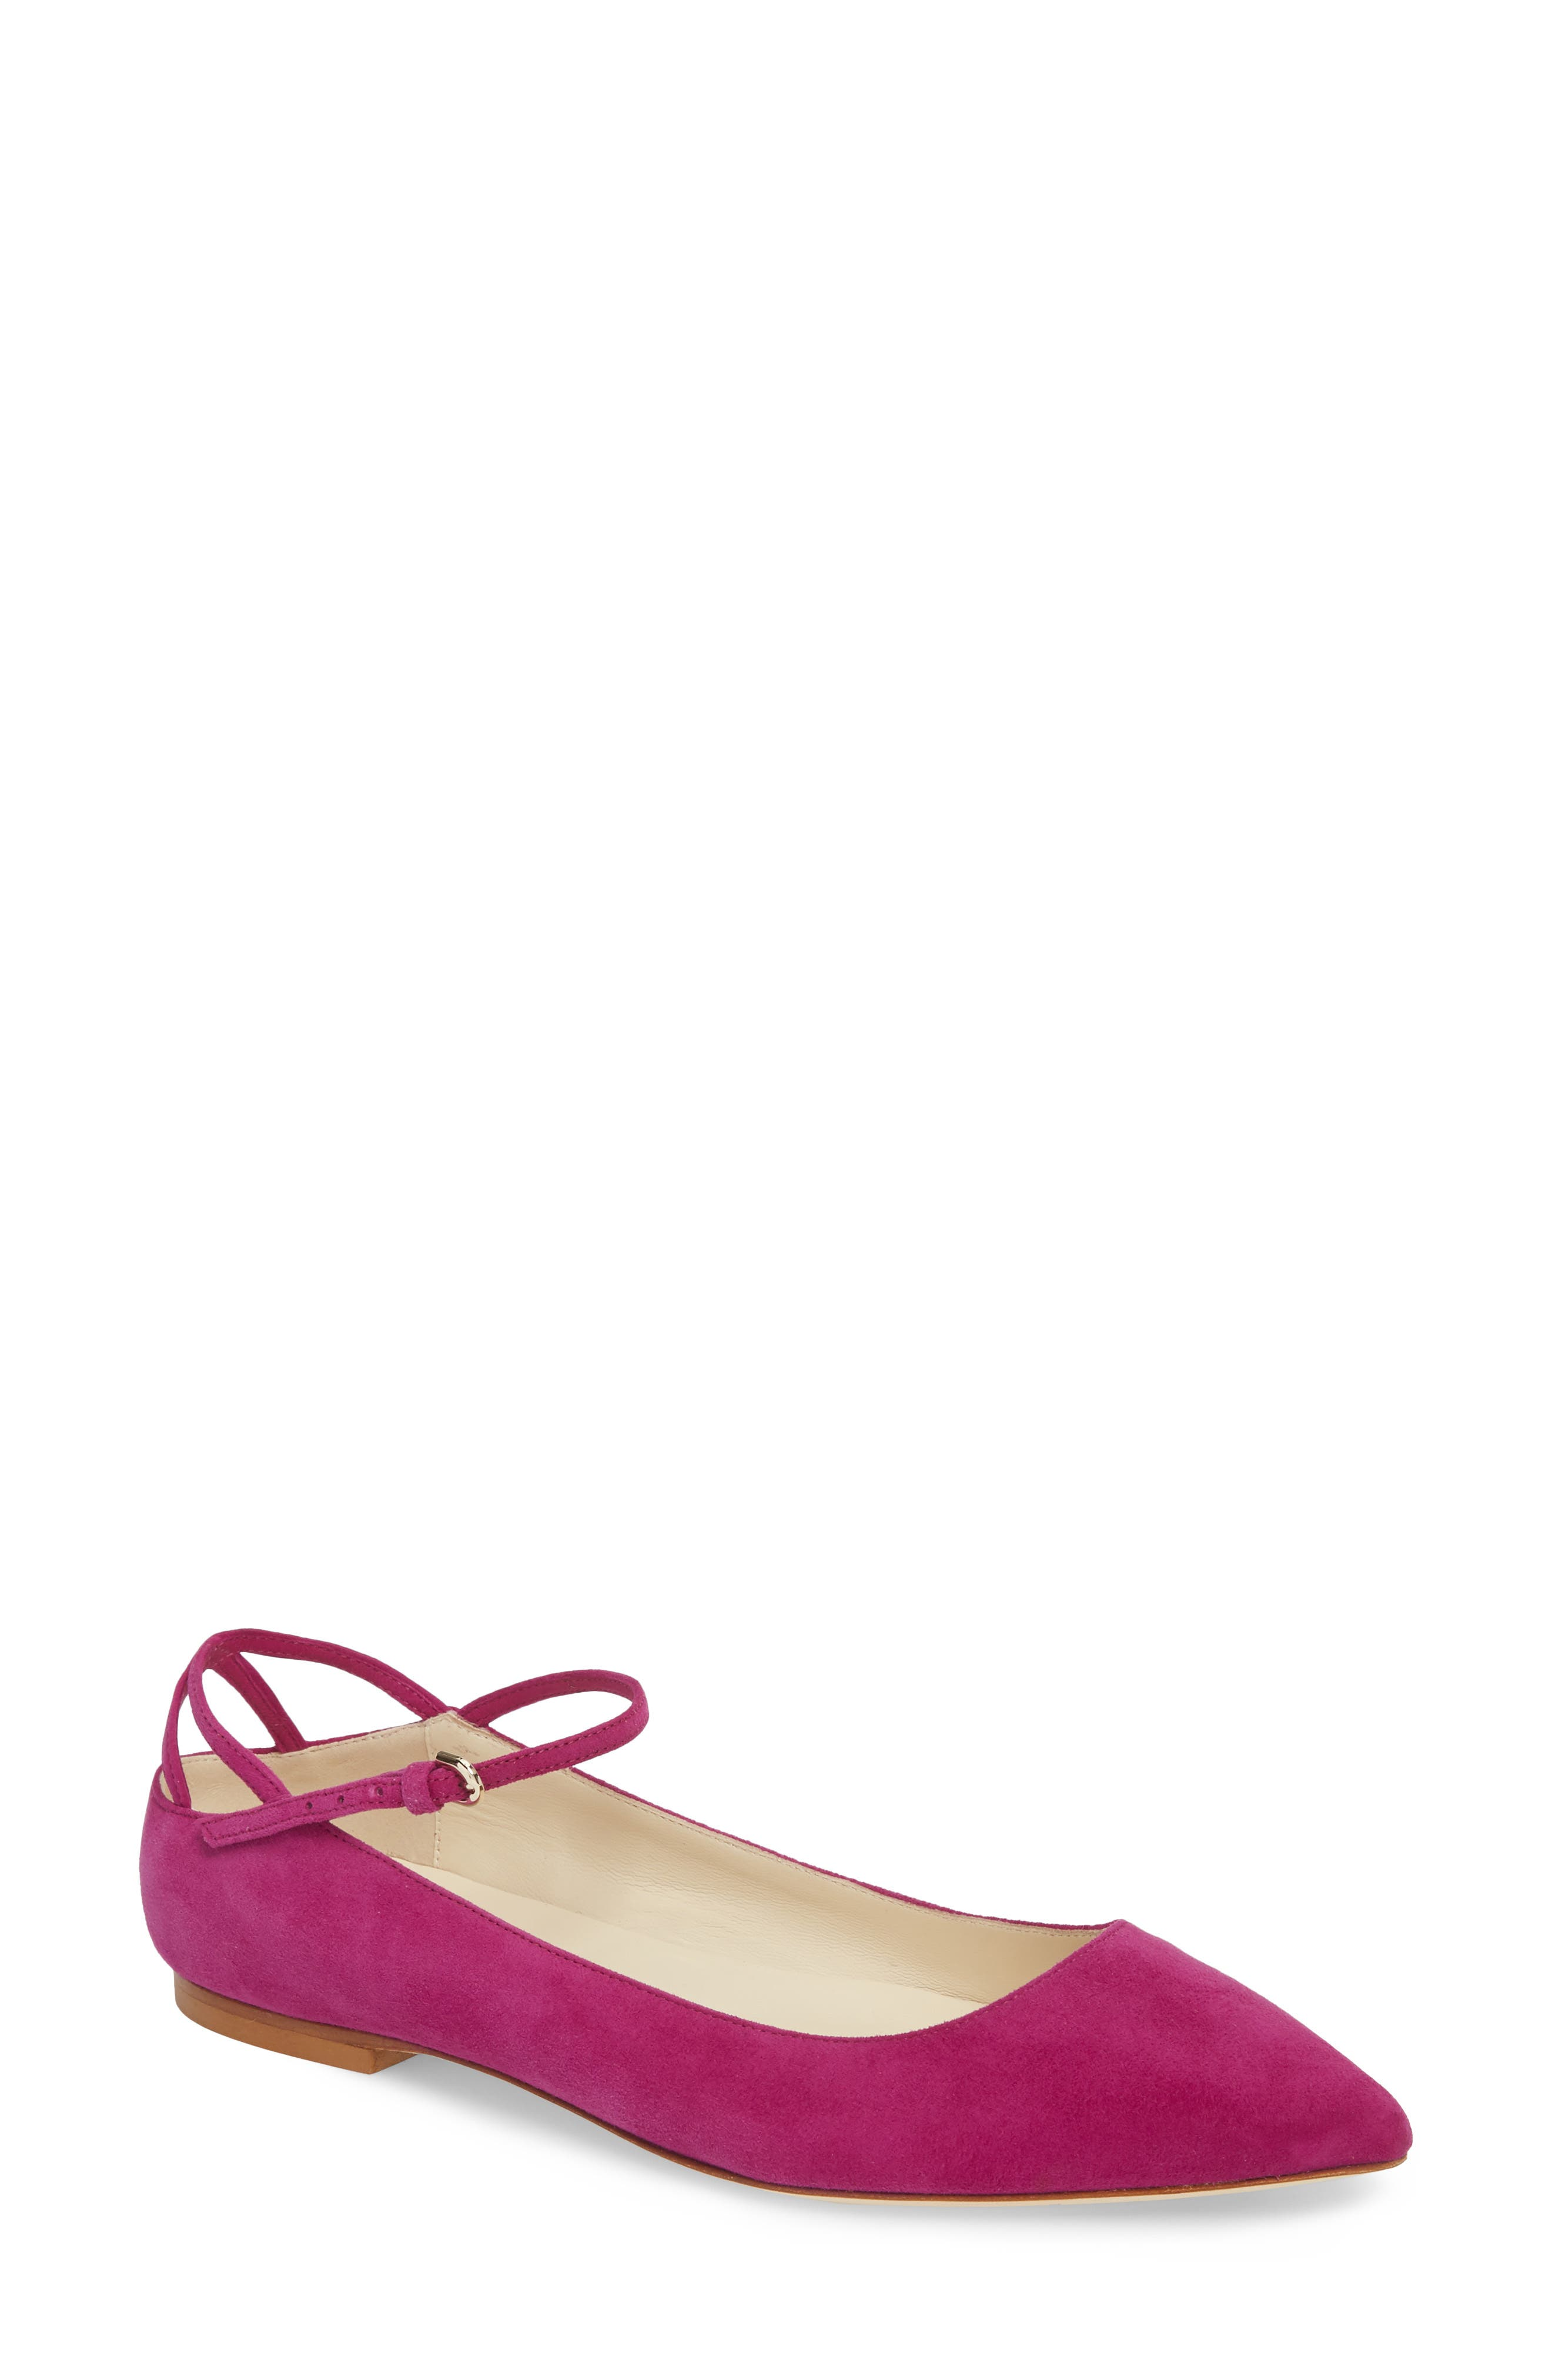 Astrid Ankle Strap Flat,                         Main,                         color, Bouganvilla Kidsuede